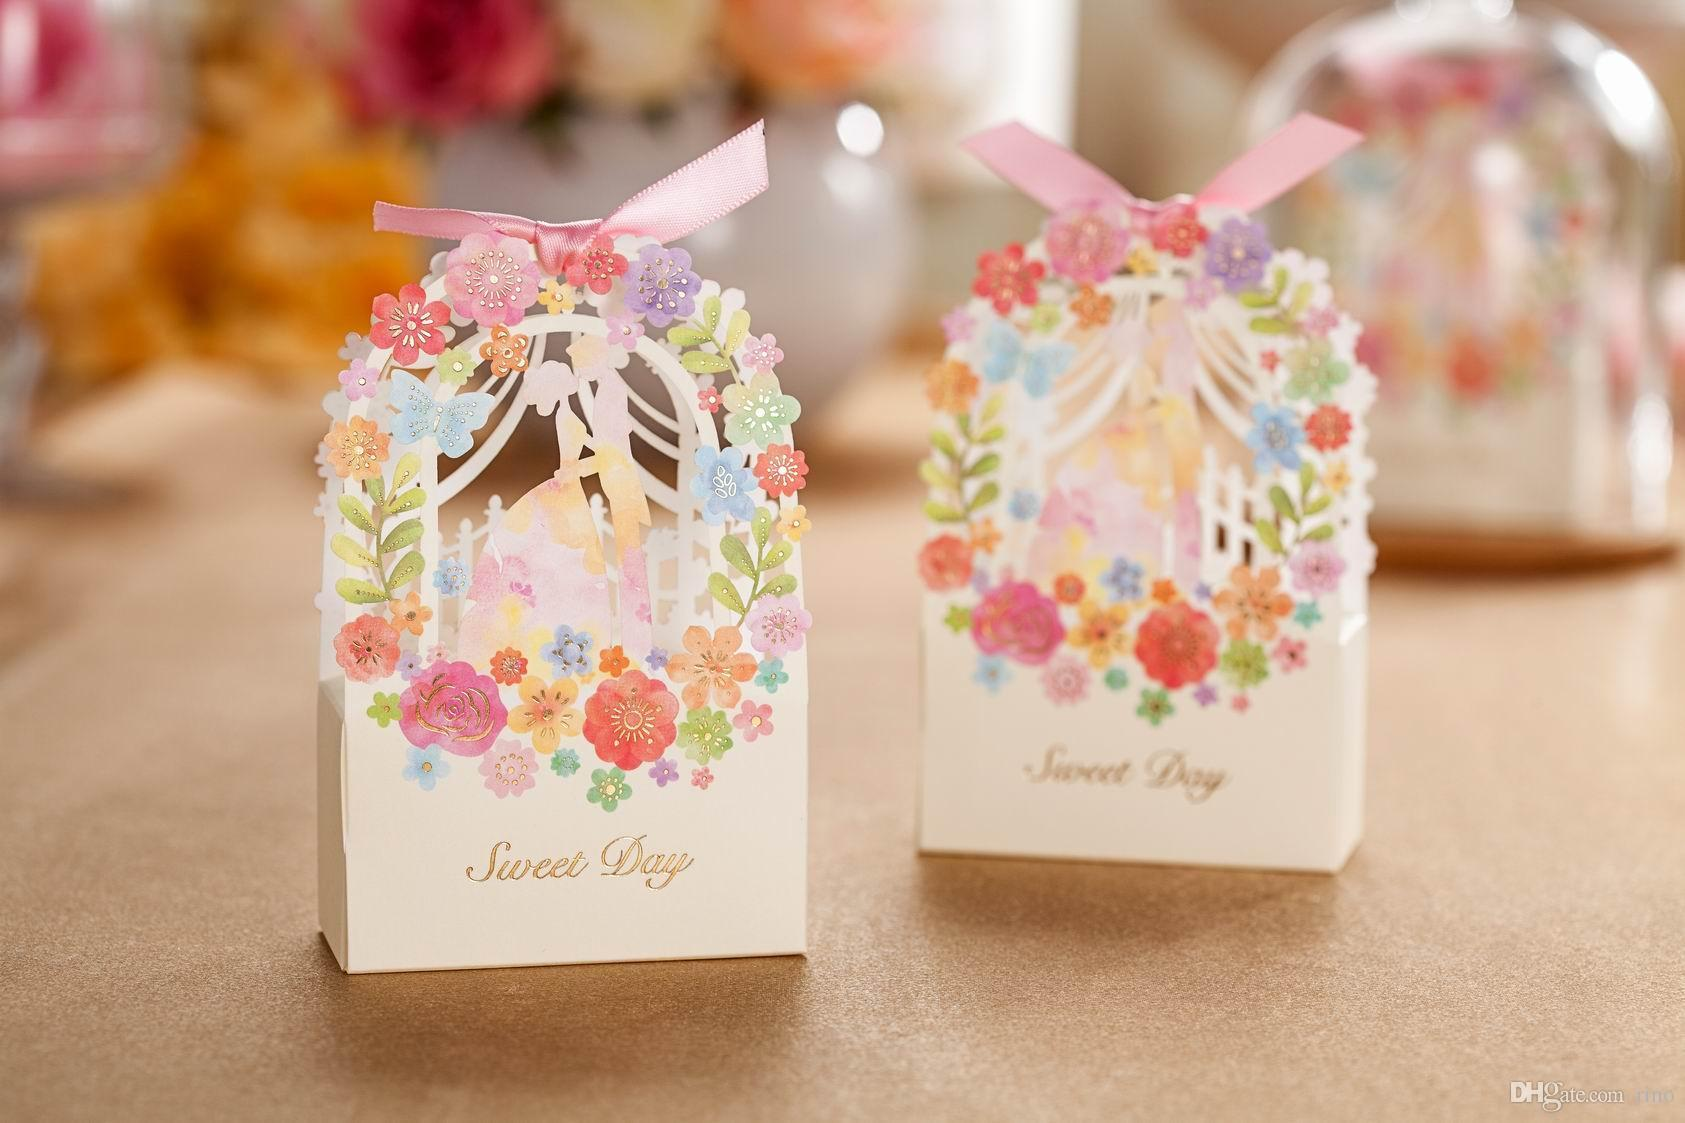 Laser Cut Wedding Candy Favors Boxes Flowers Chocolate Gifts Paper Bags Boxes Wedding Supplies Free Shipping